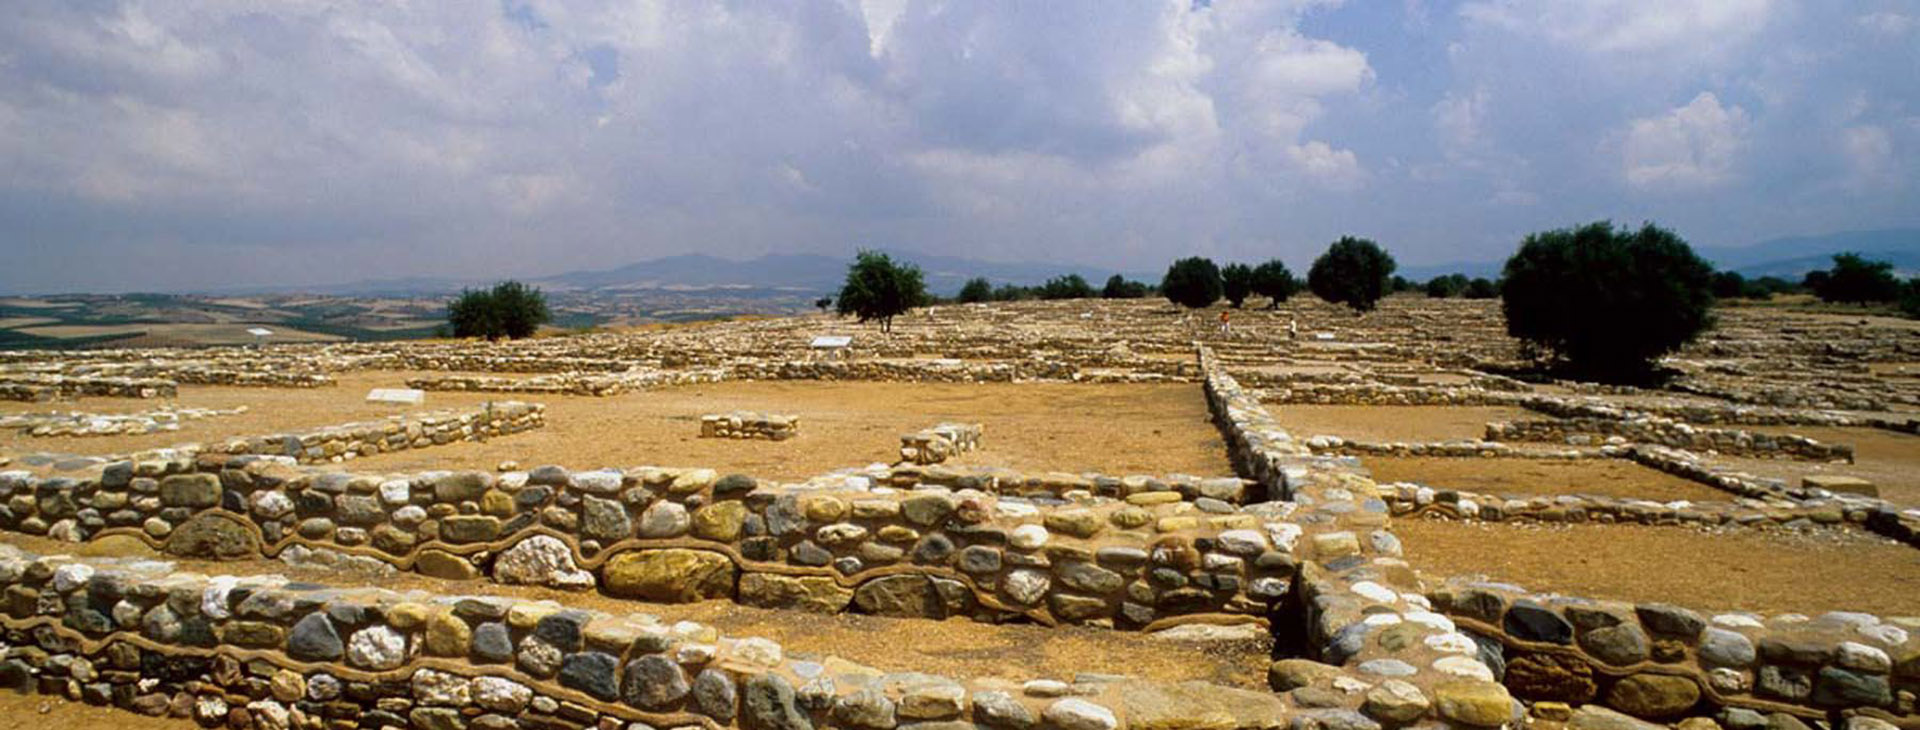 Archaeological site of Olynthos, Halkidiki (Chalkidiki)